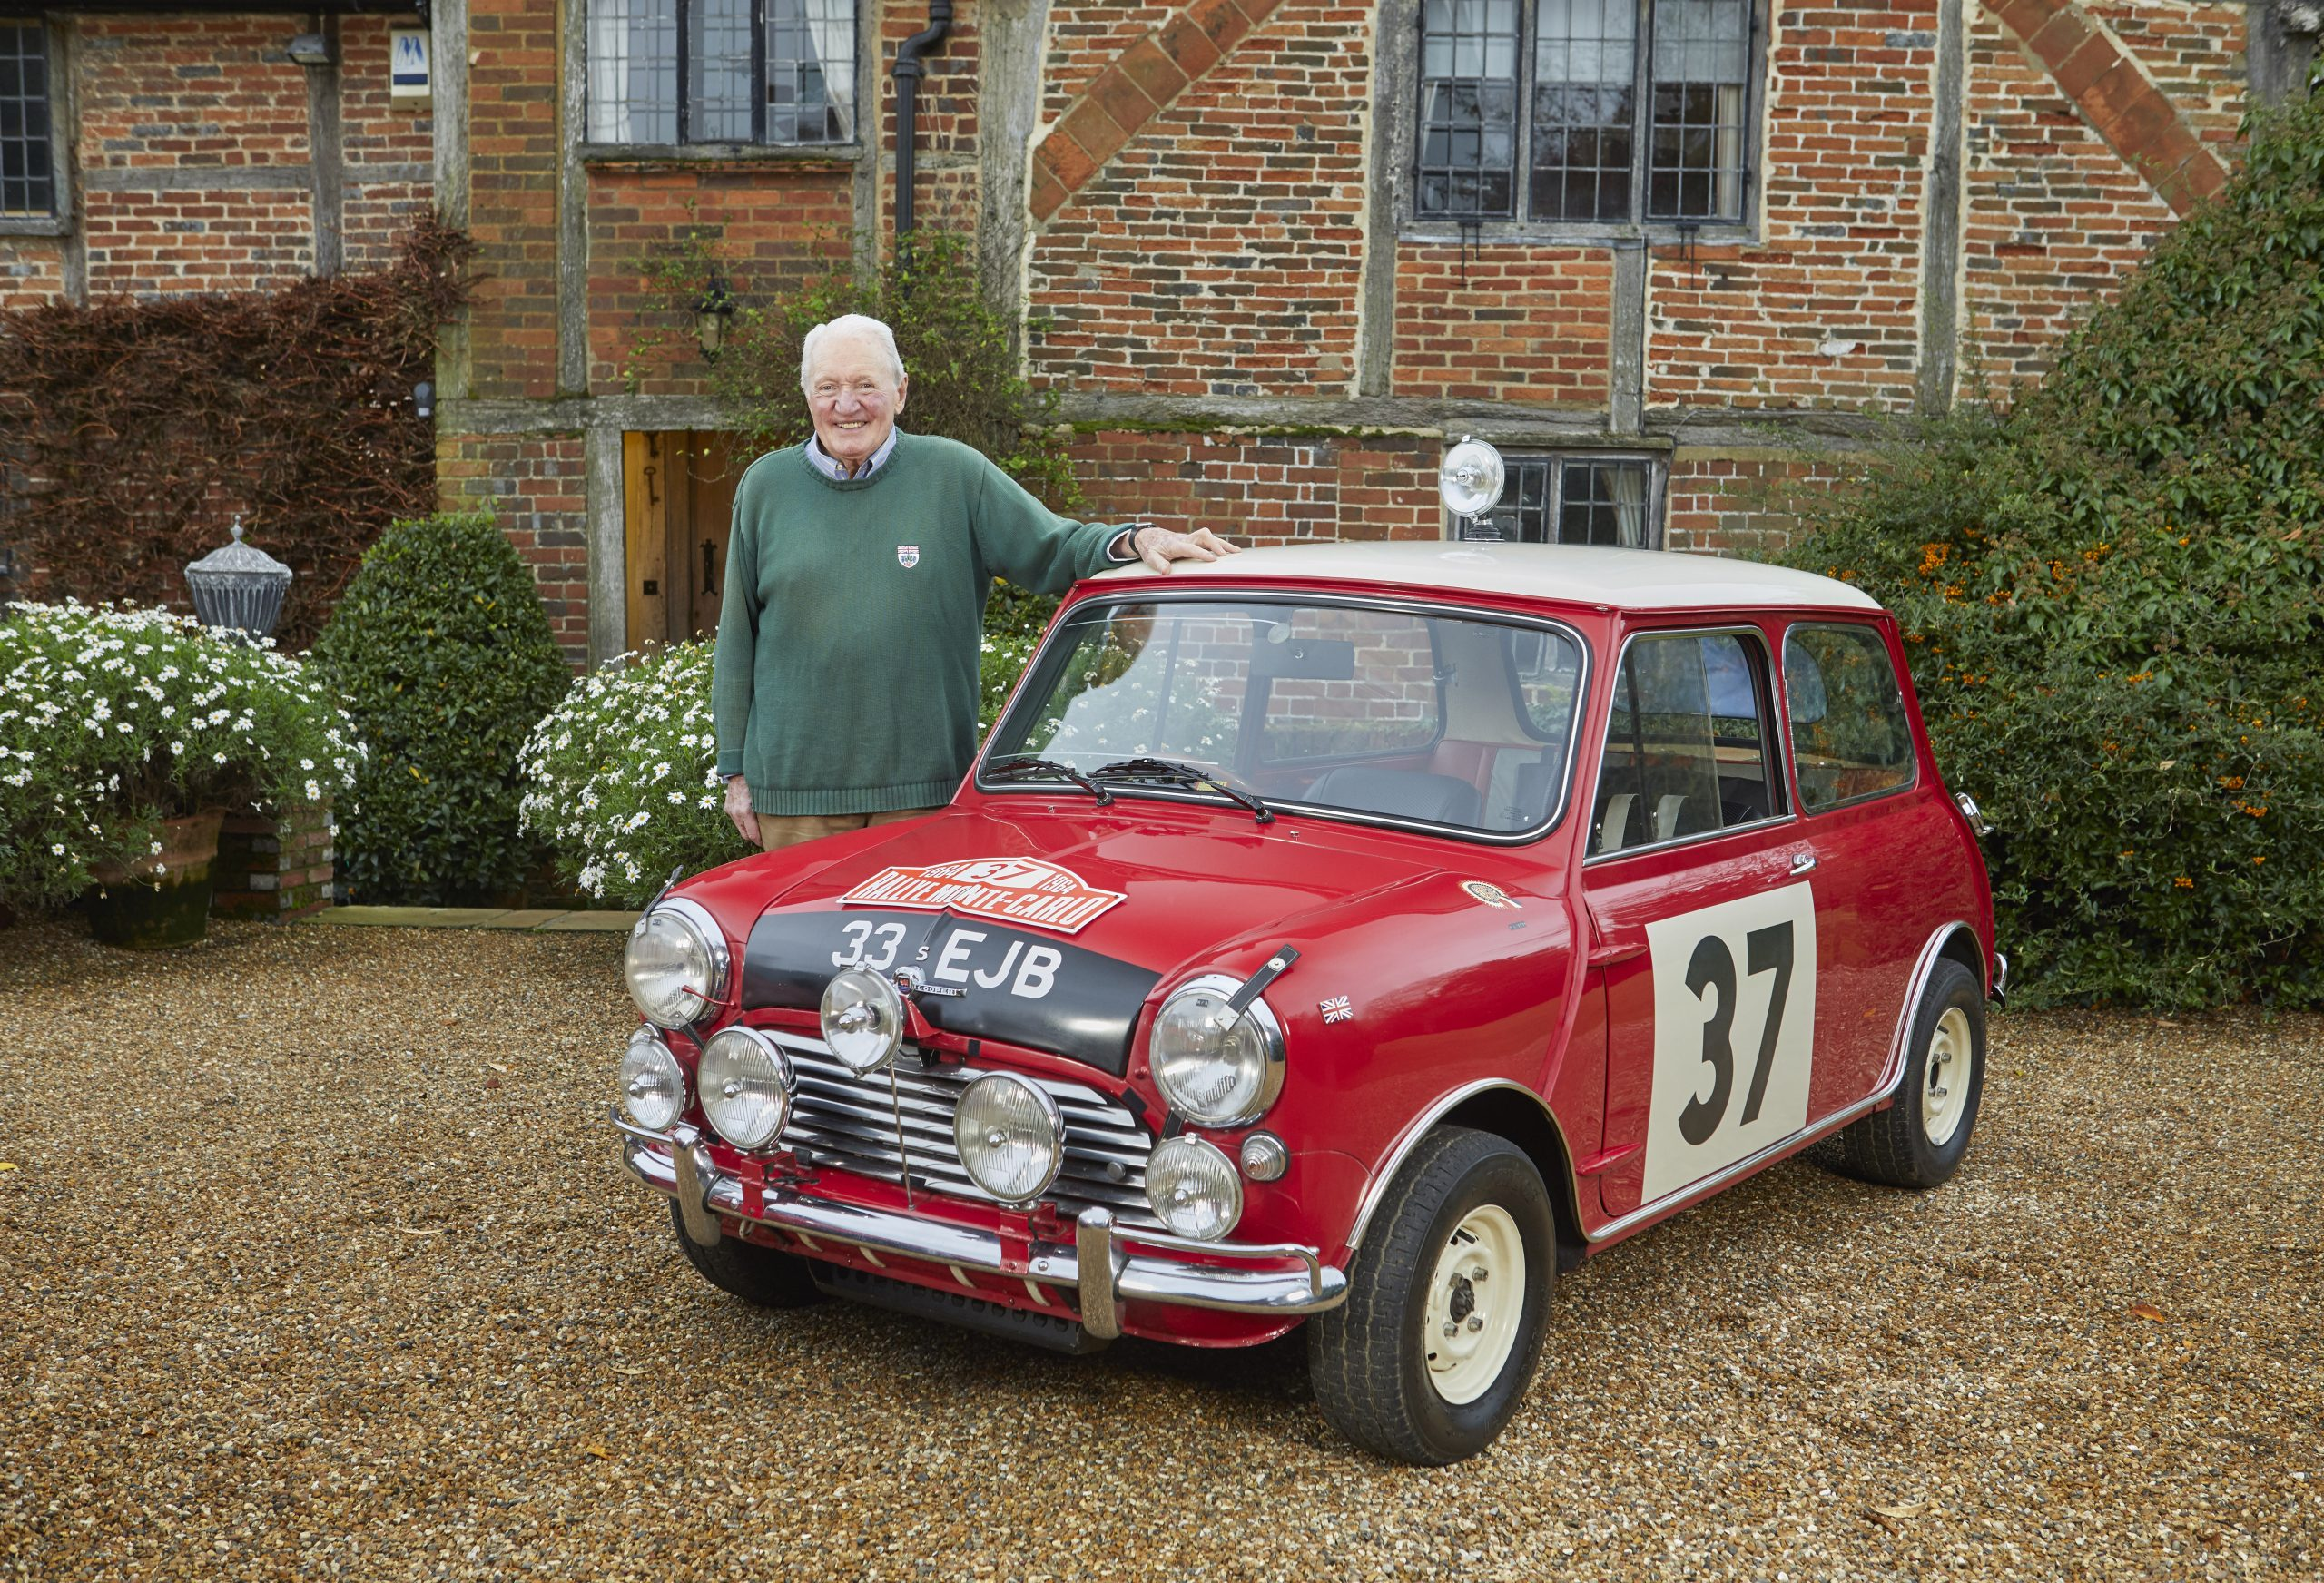 Paddy Hopkirk and MINI